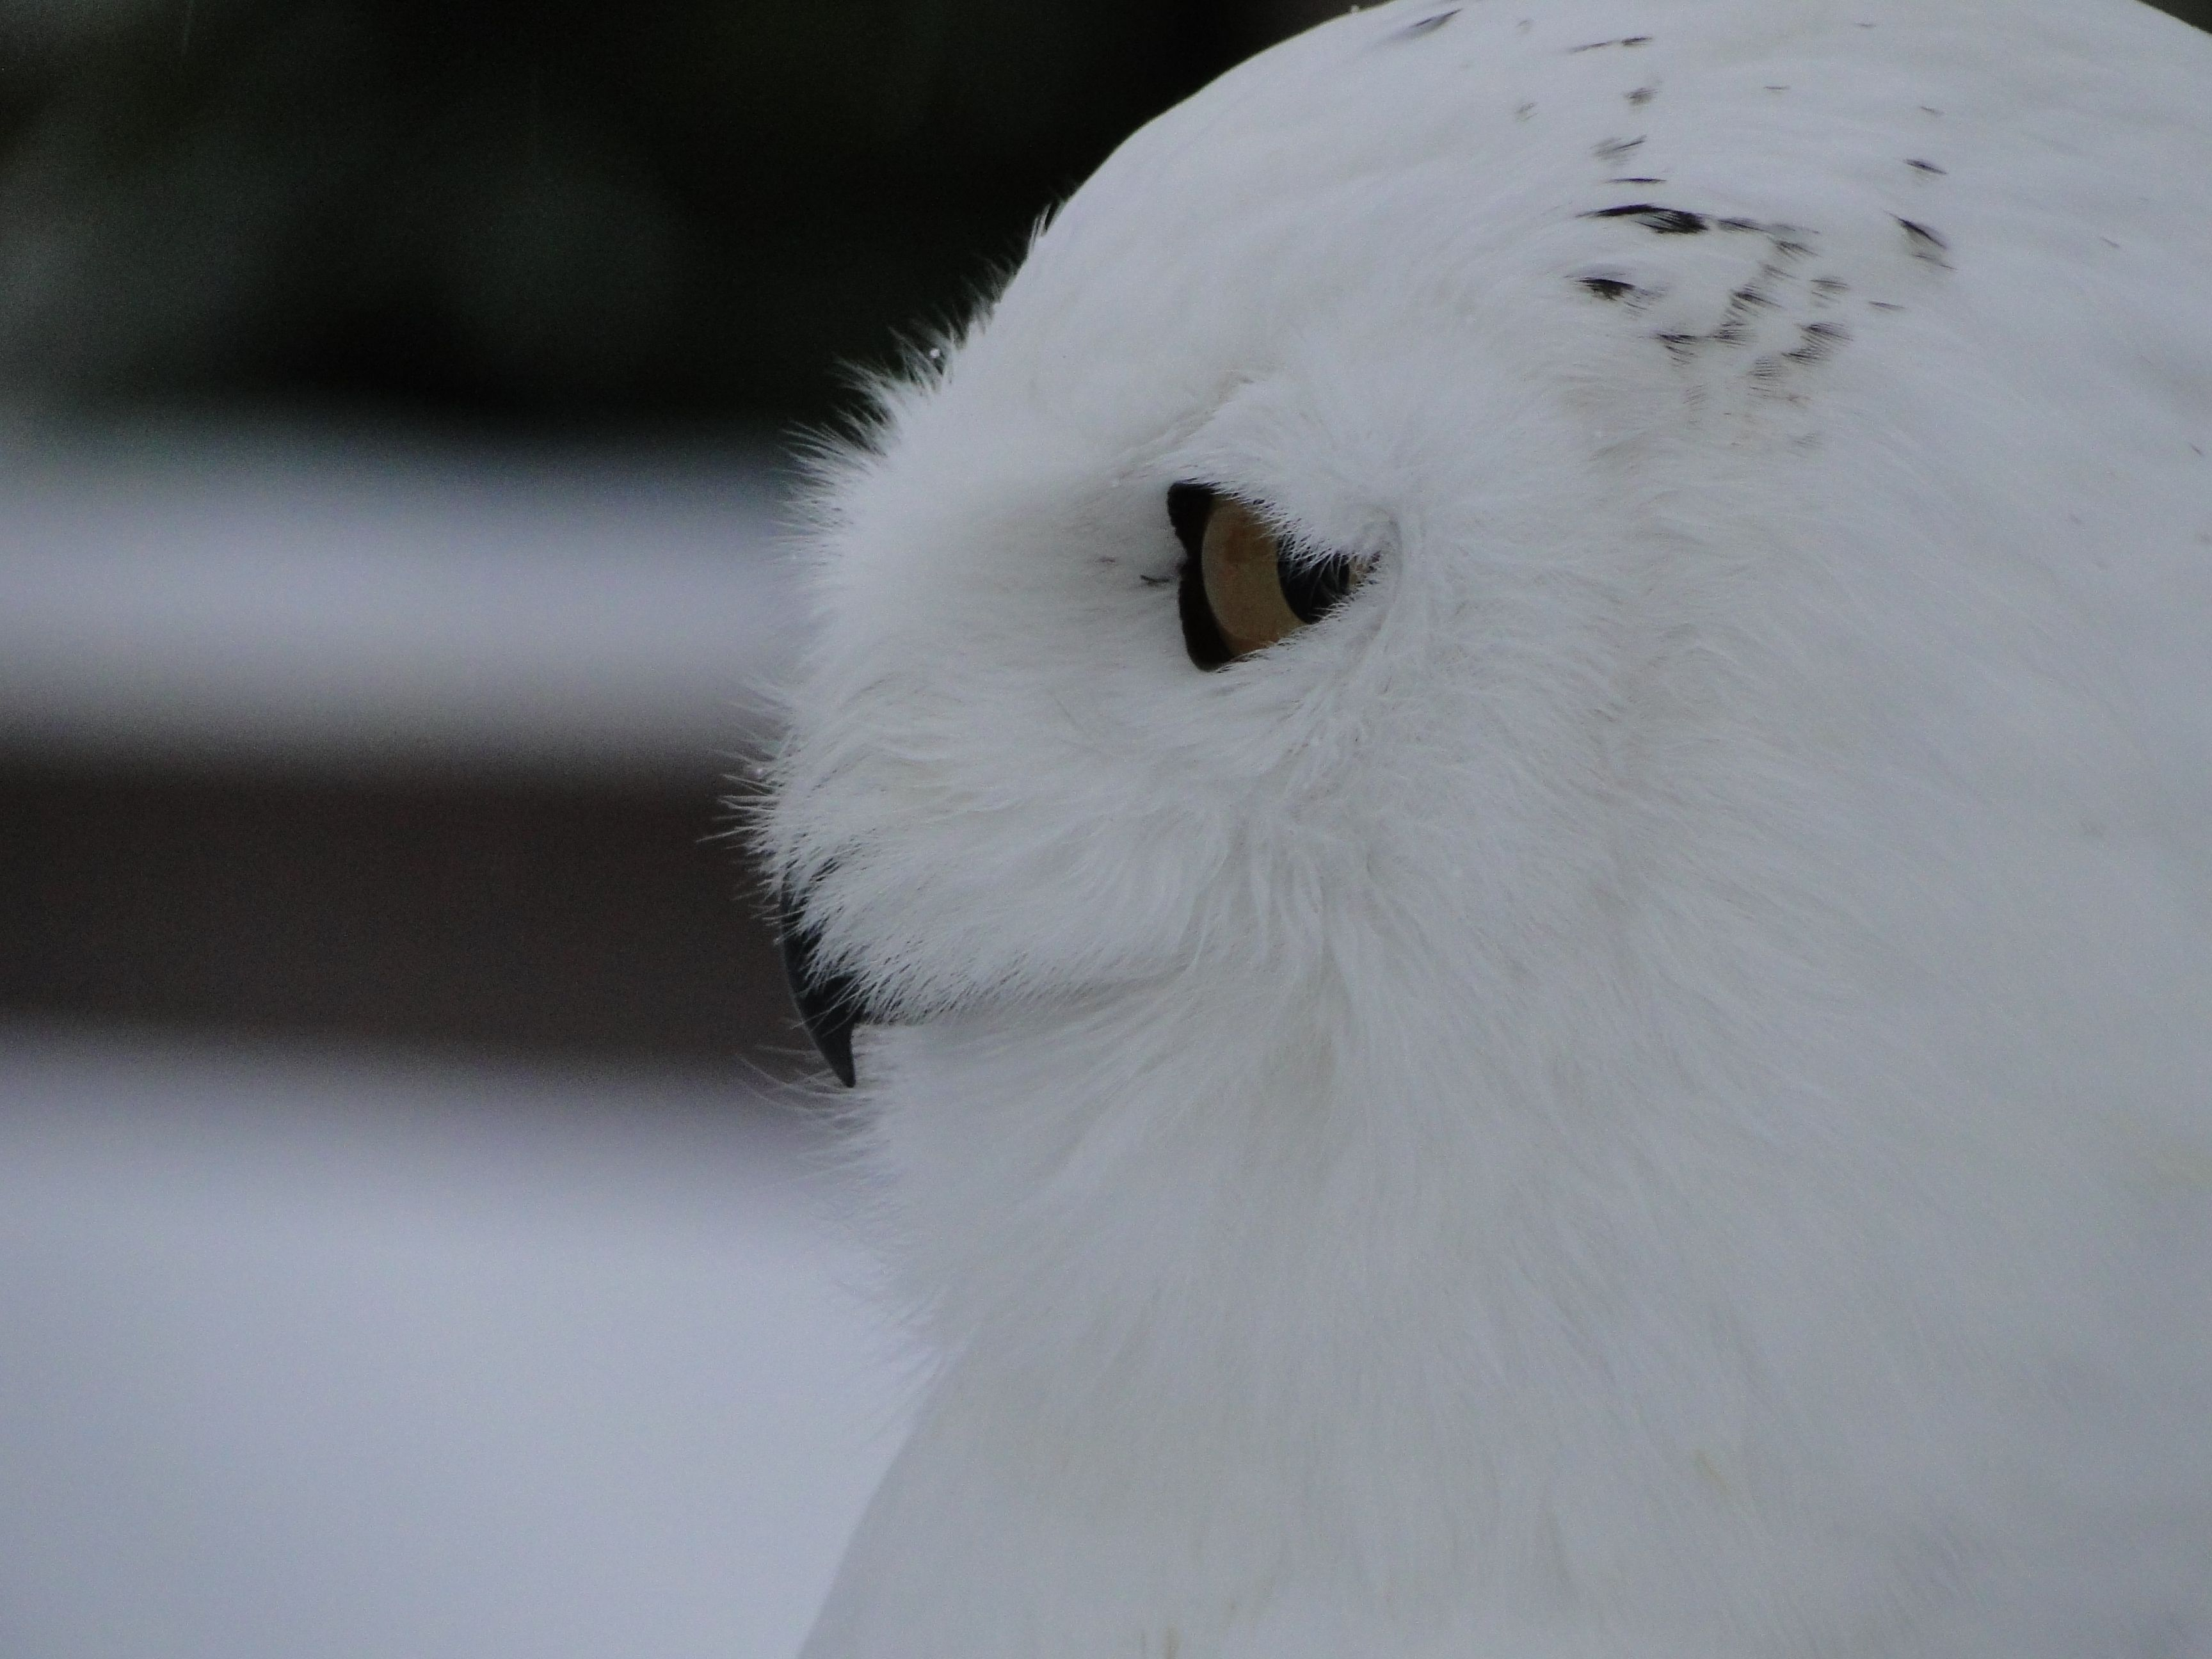 Say hello to Snowy :) http://www.peckfortoncastle.co.uk/activities-falconry